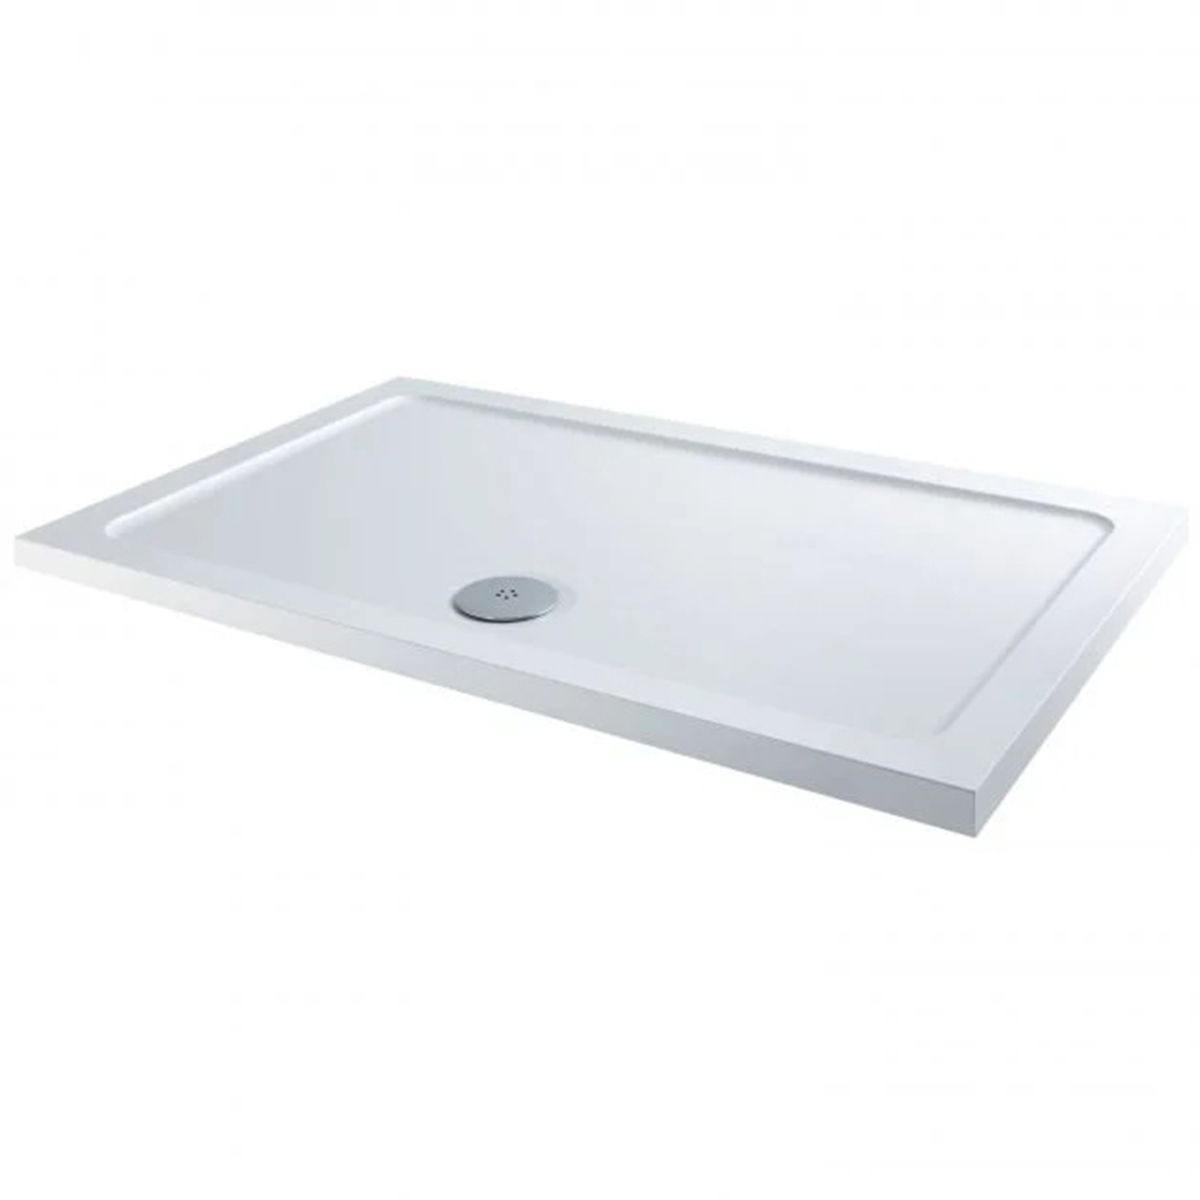 Bathrooms To Love Reflex Rectangular Low Profile Shower Tray with Waste 900mm x 800mm